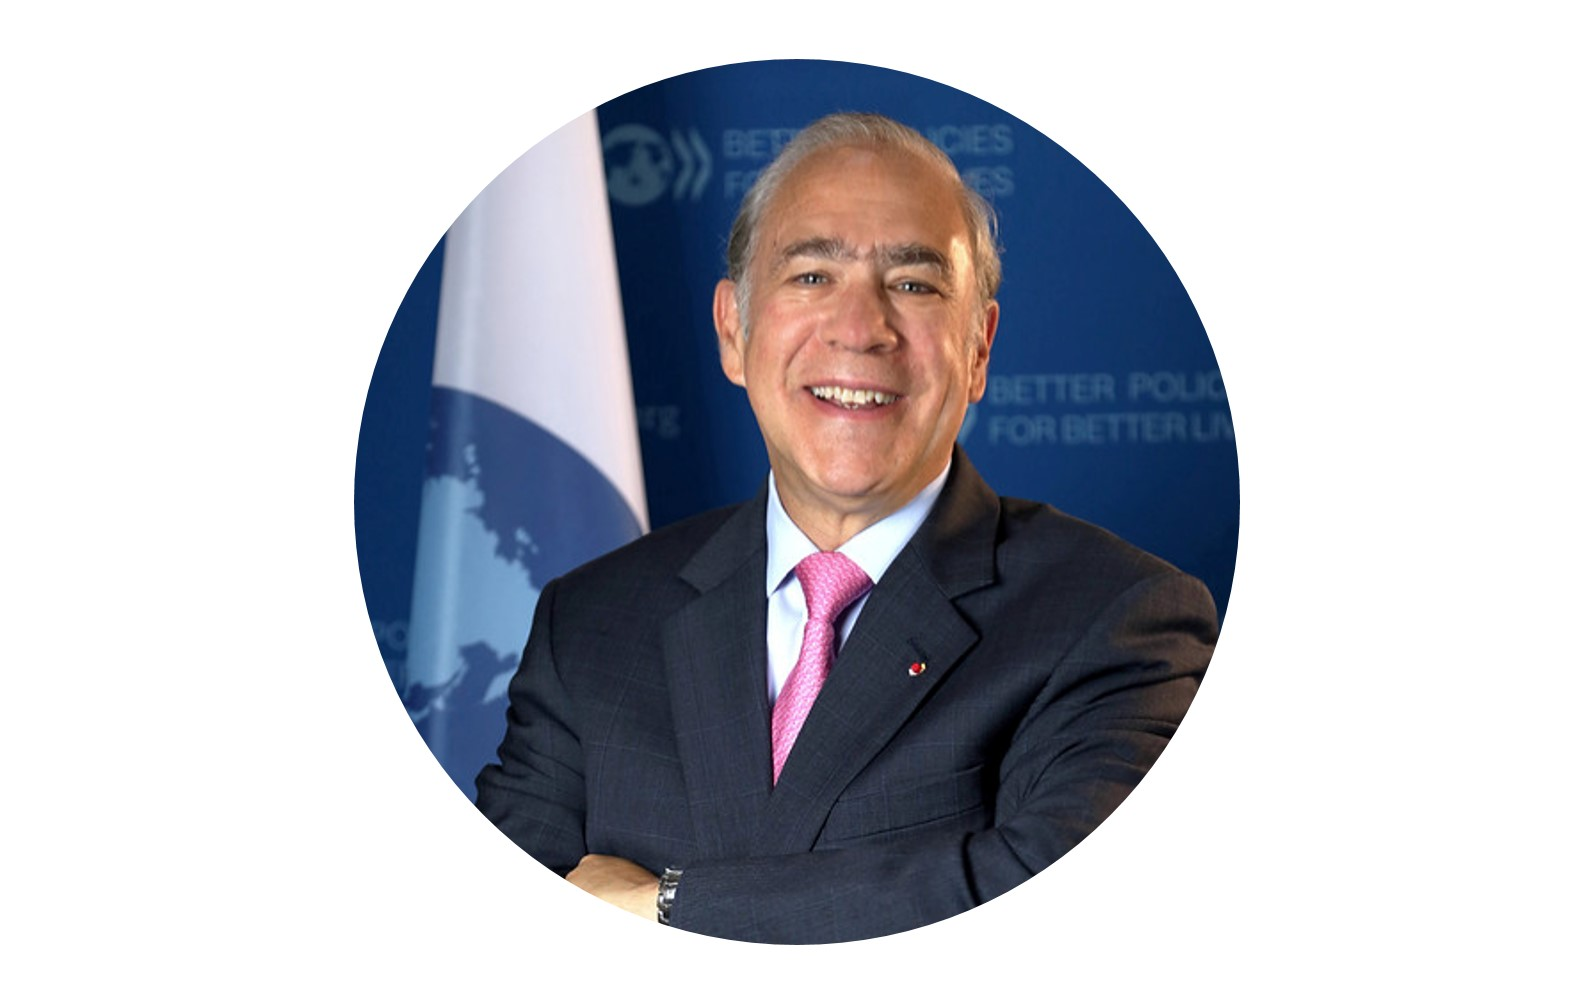 Angel Gurría, OECD Secretary-General